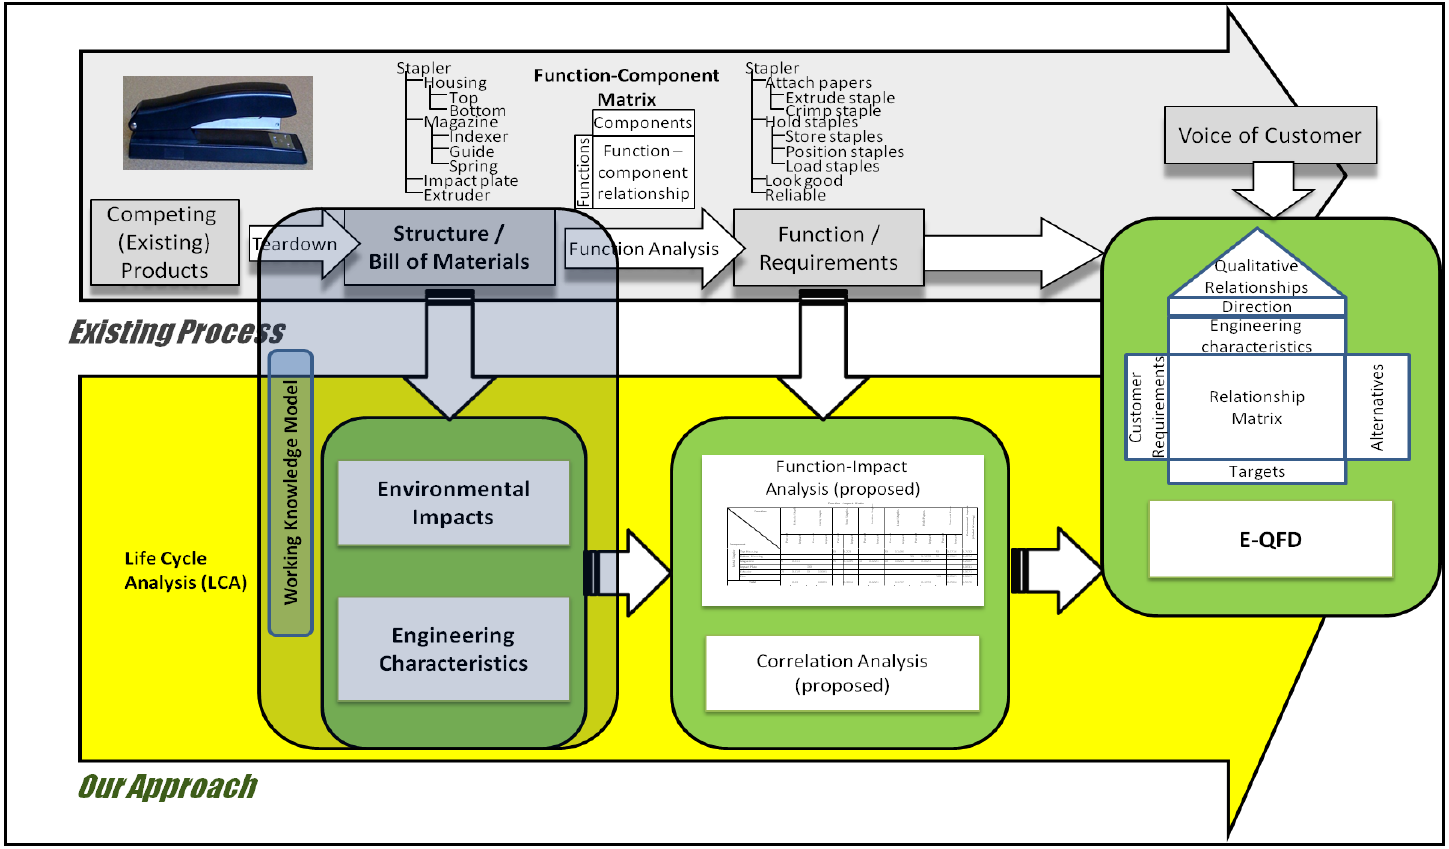 Integration of Sustainability into Early Design through Working Knowledge Model and Visual Tools